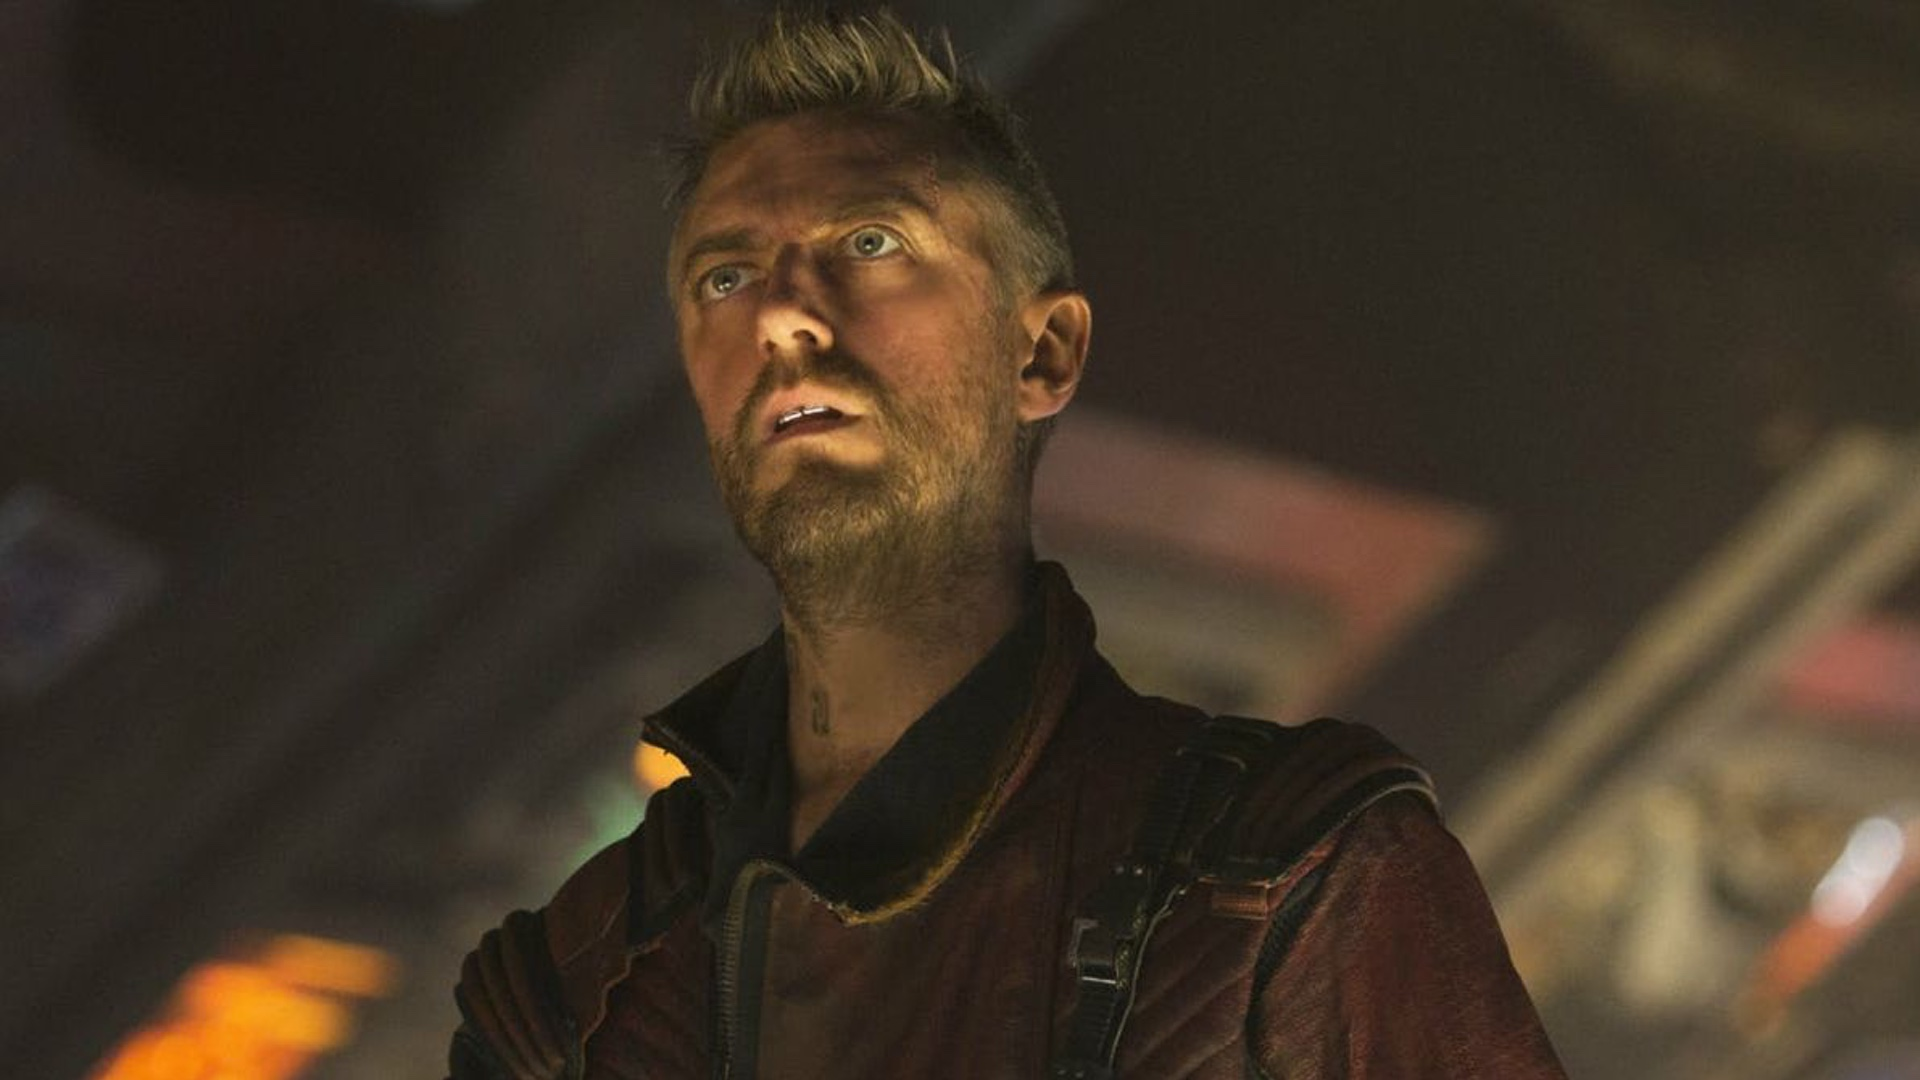 sean-gunn-talks-about-guardians-of-the-galaxy-vol-3-and-says-it-will-work-itself-out-social.jpg